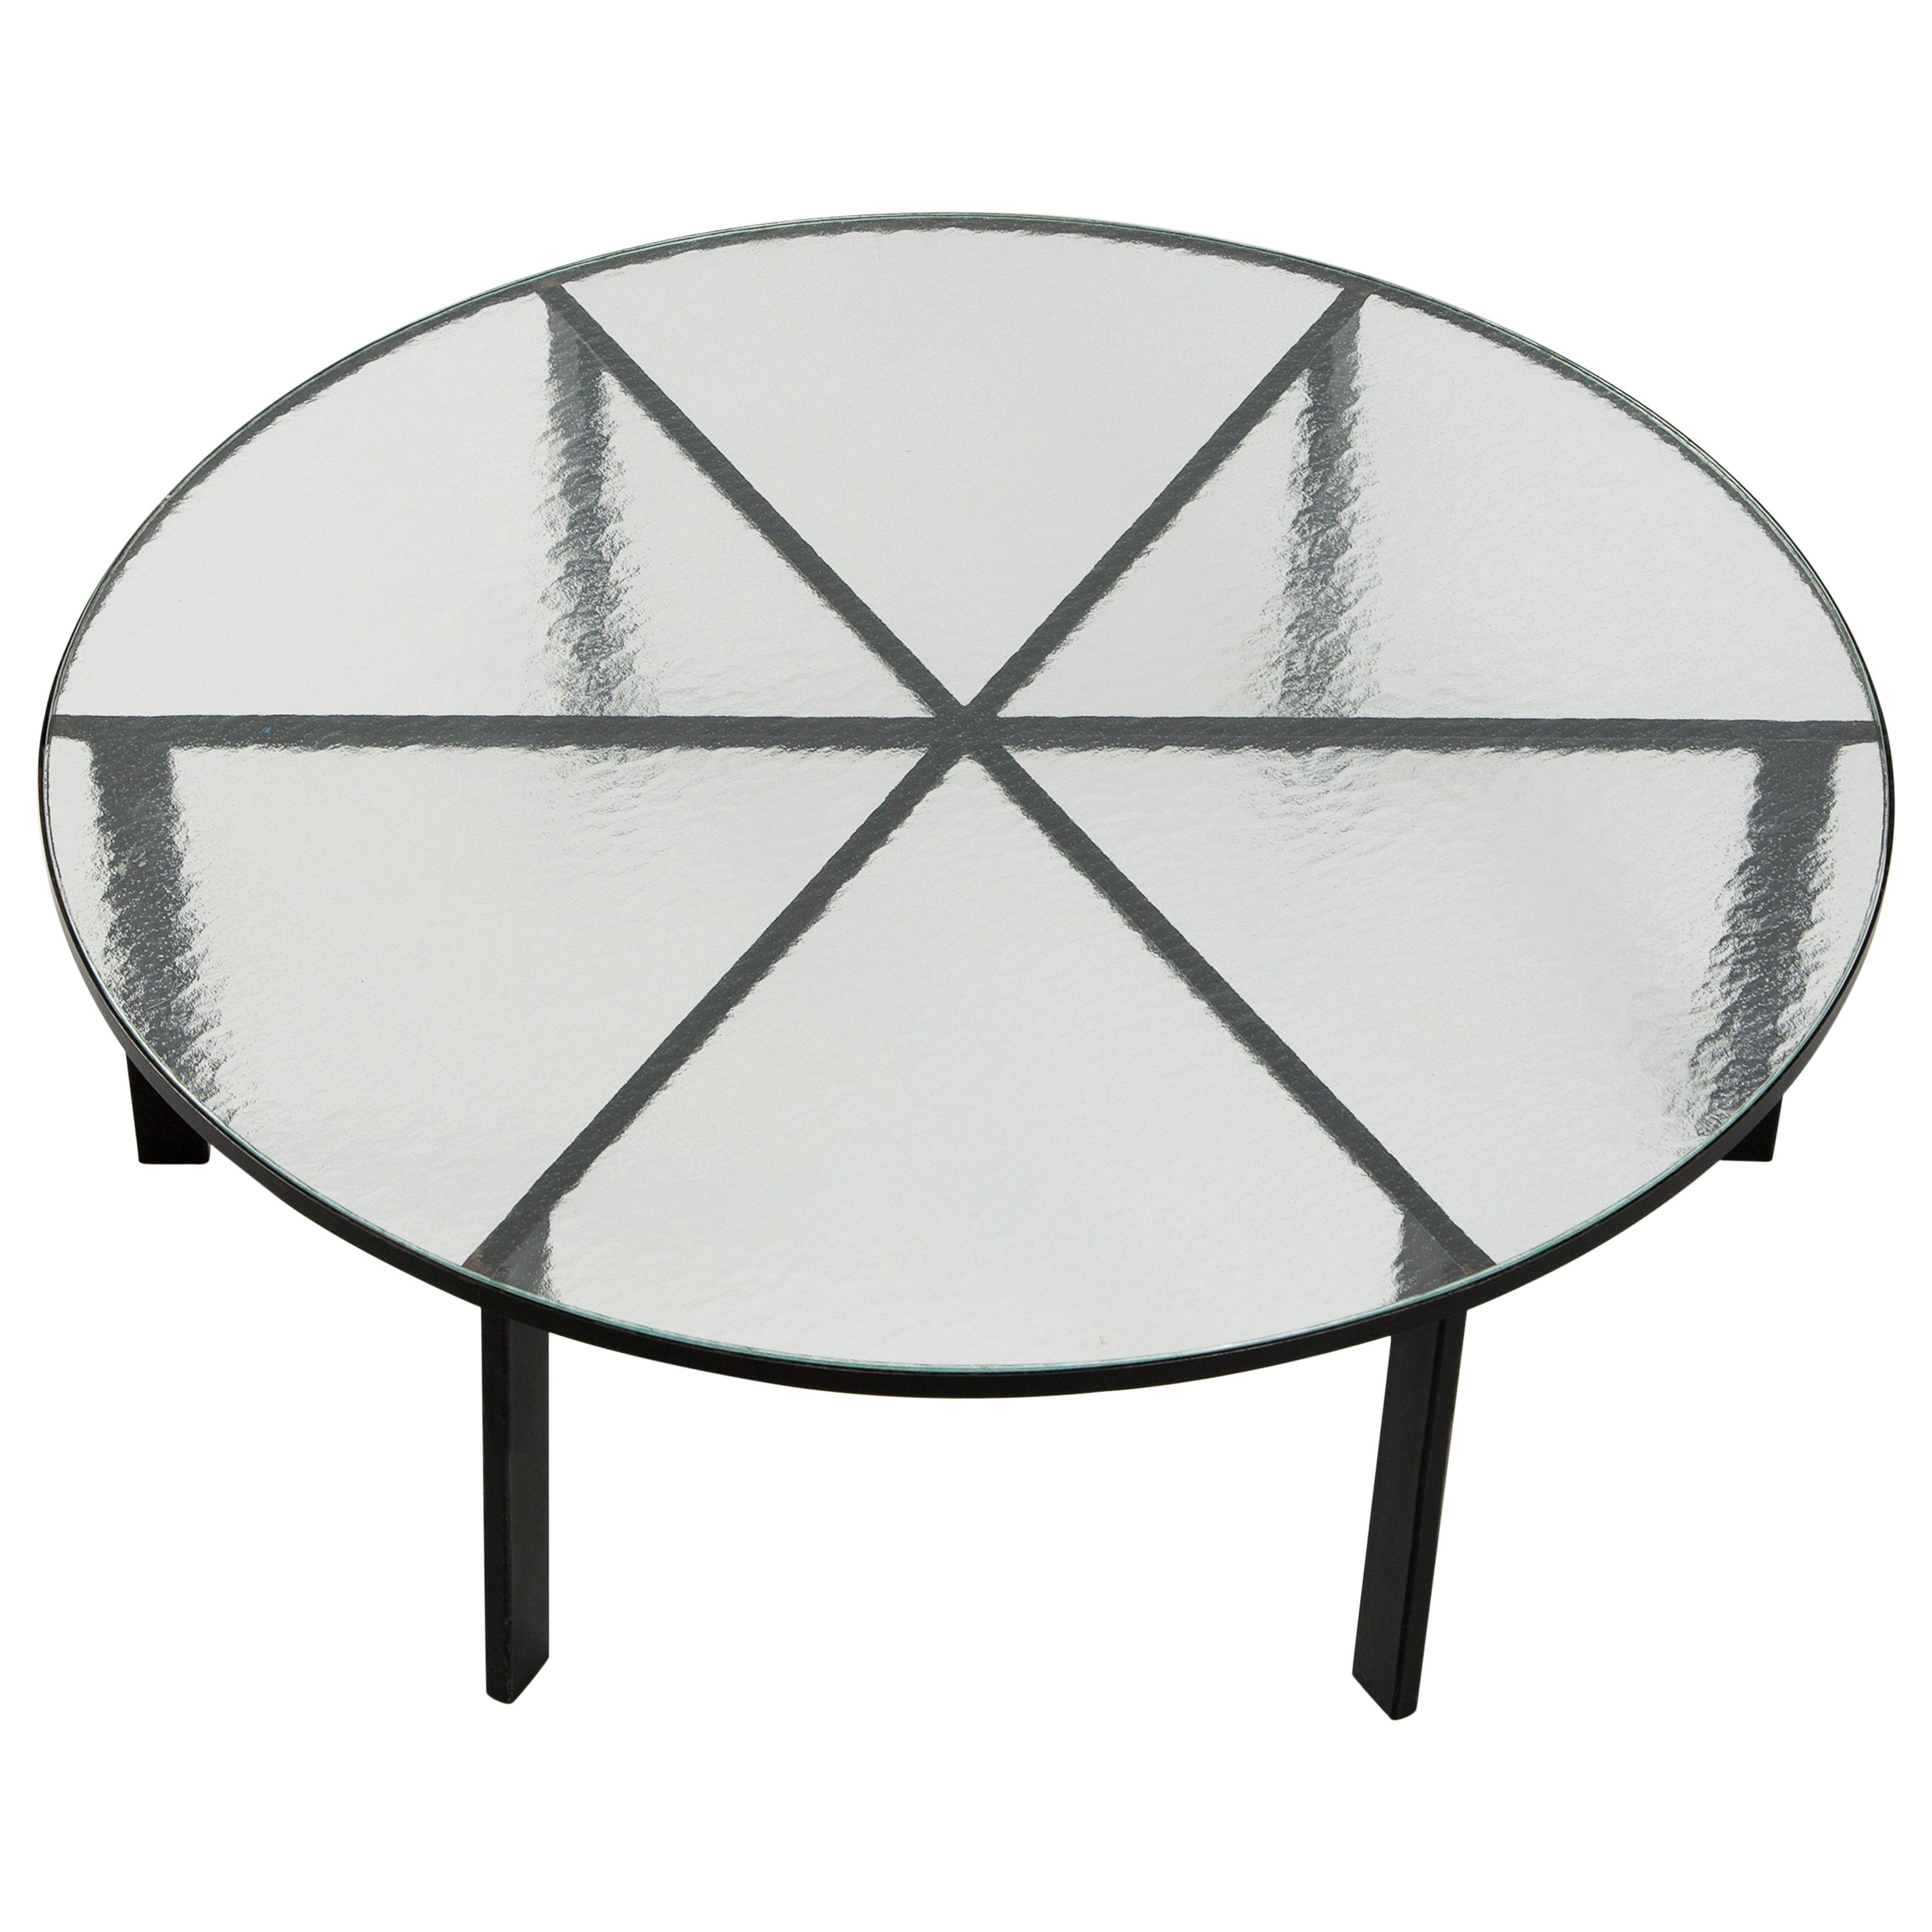 Janni Van Pelt Round Coffee Table with Frosted Glass